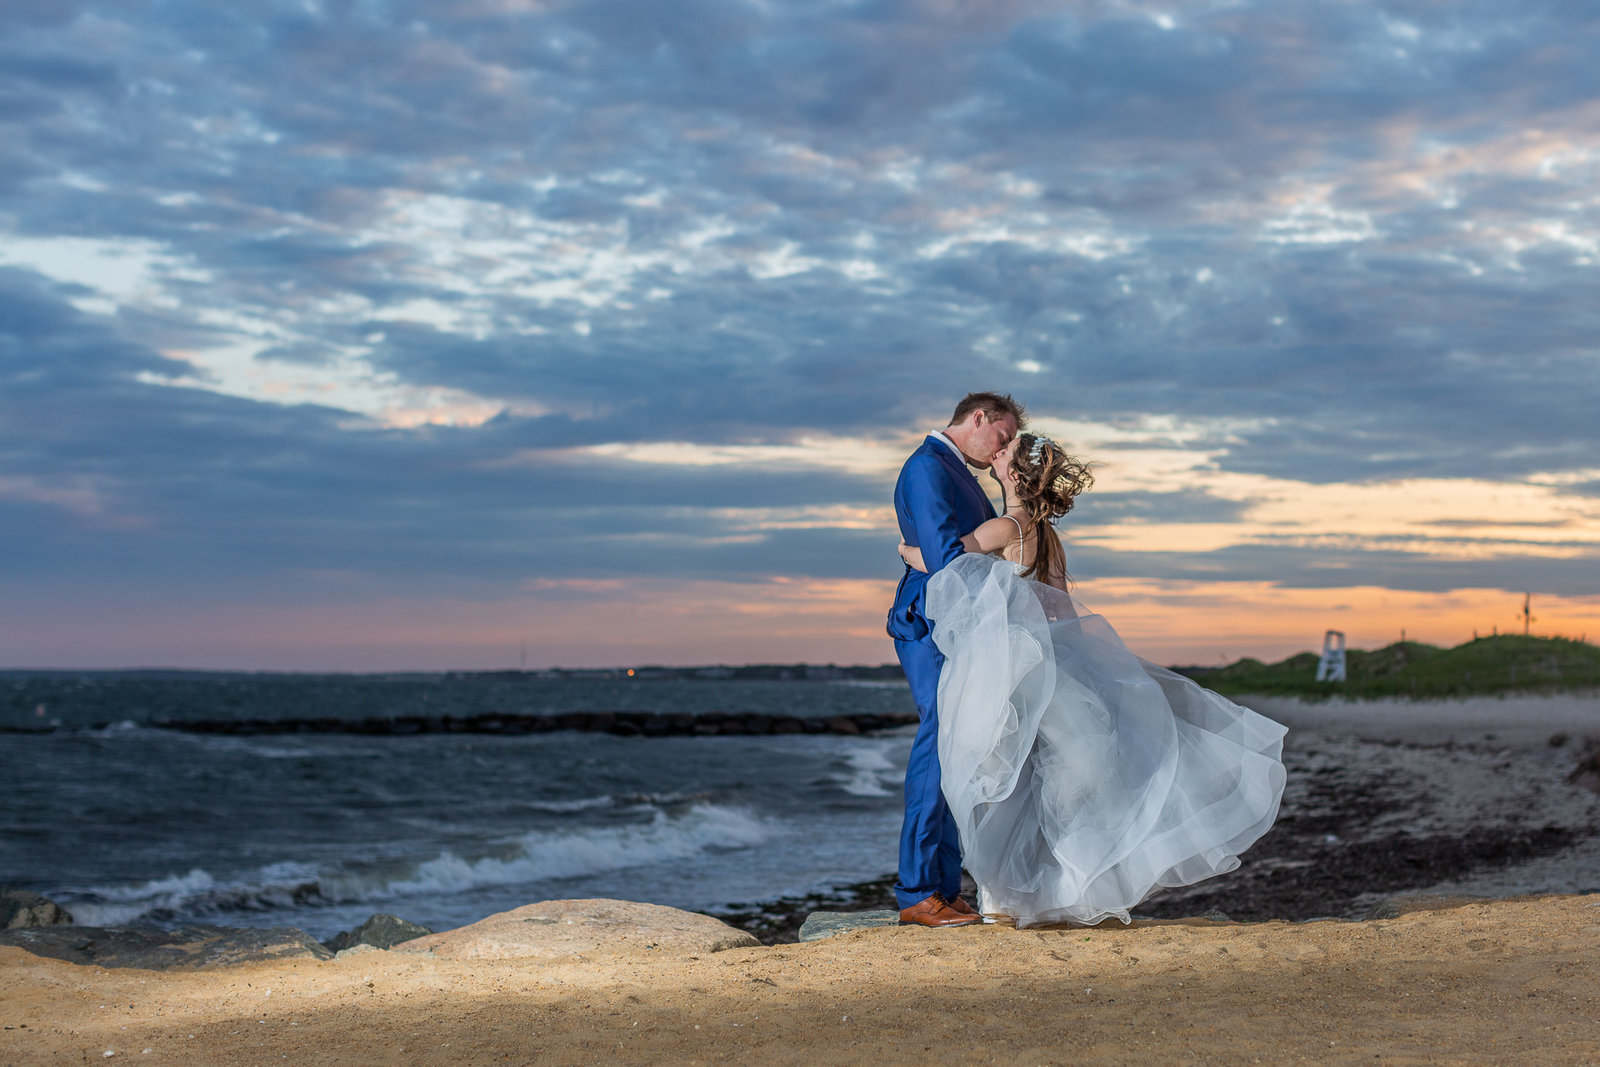 LightHouseInn_MichelleKayePhotography-1209